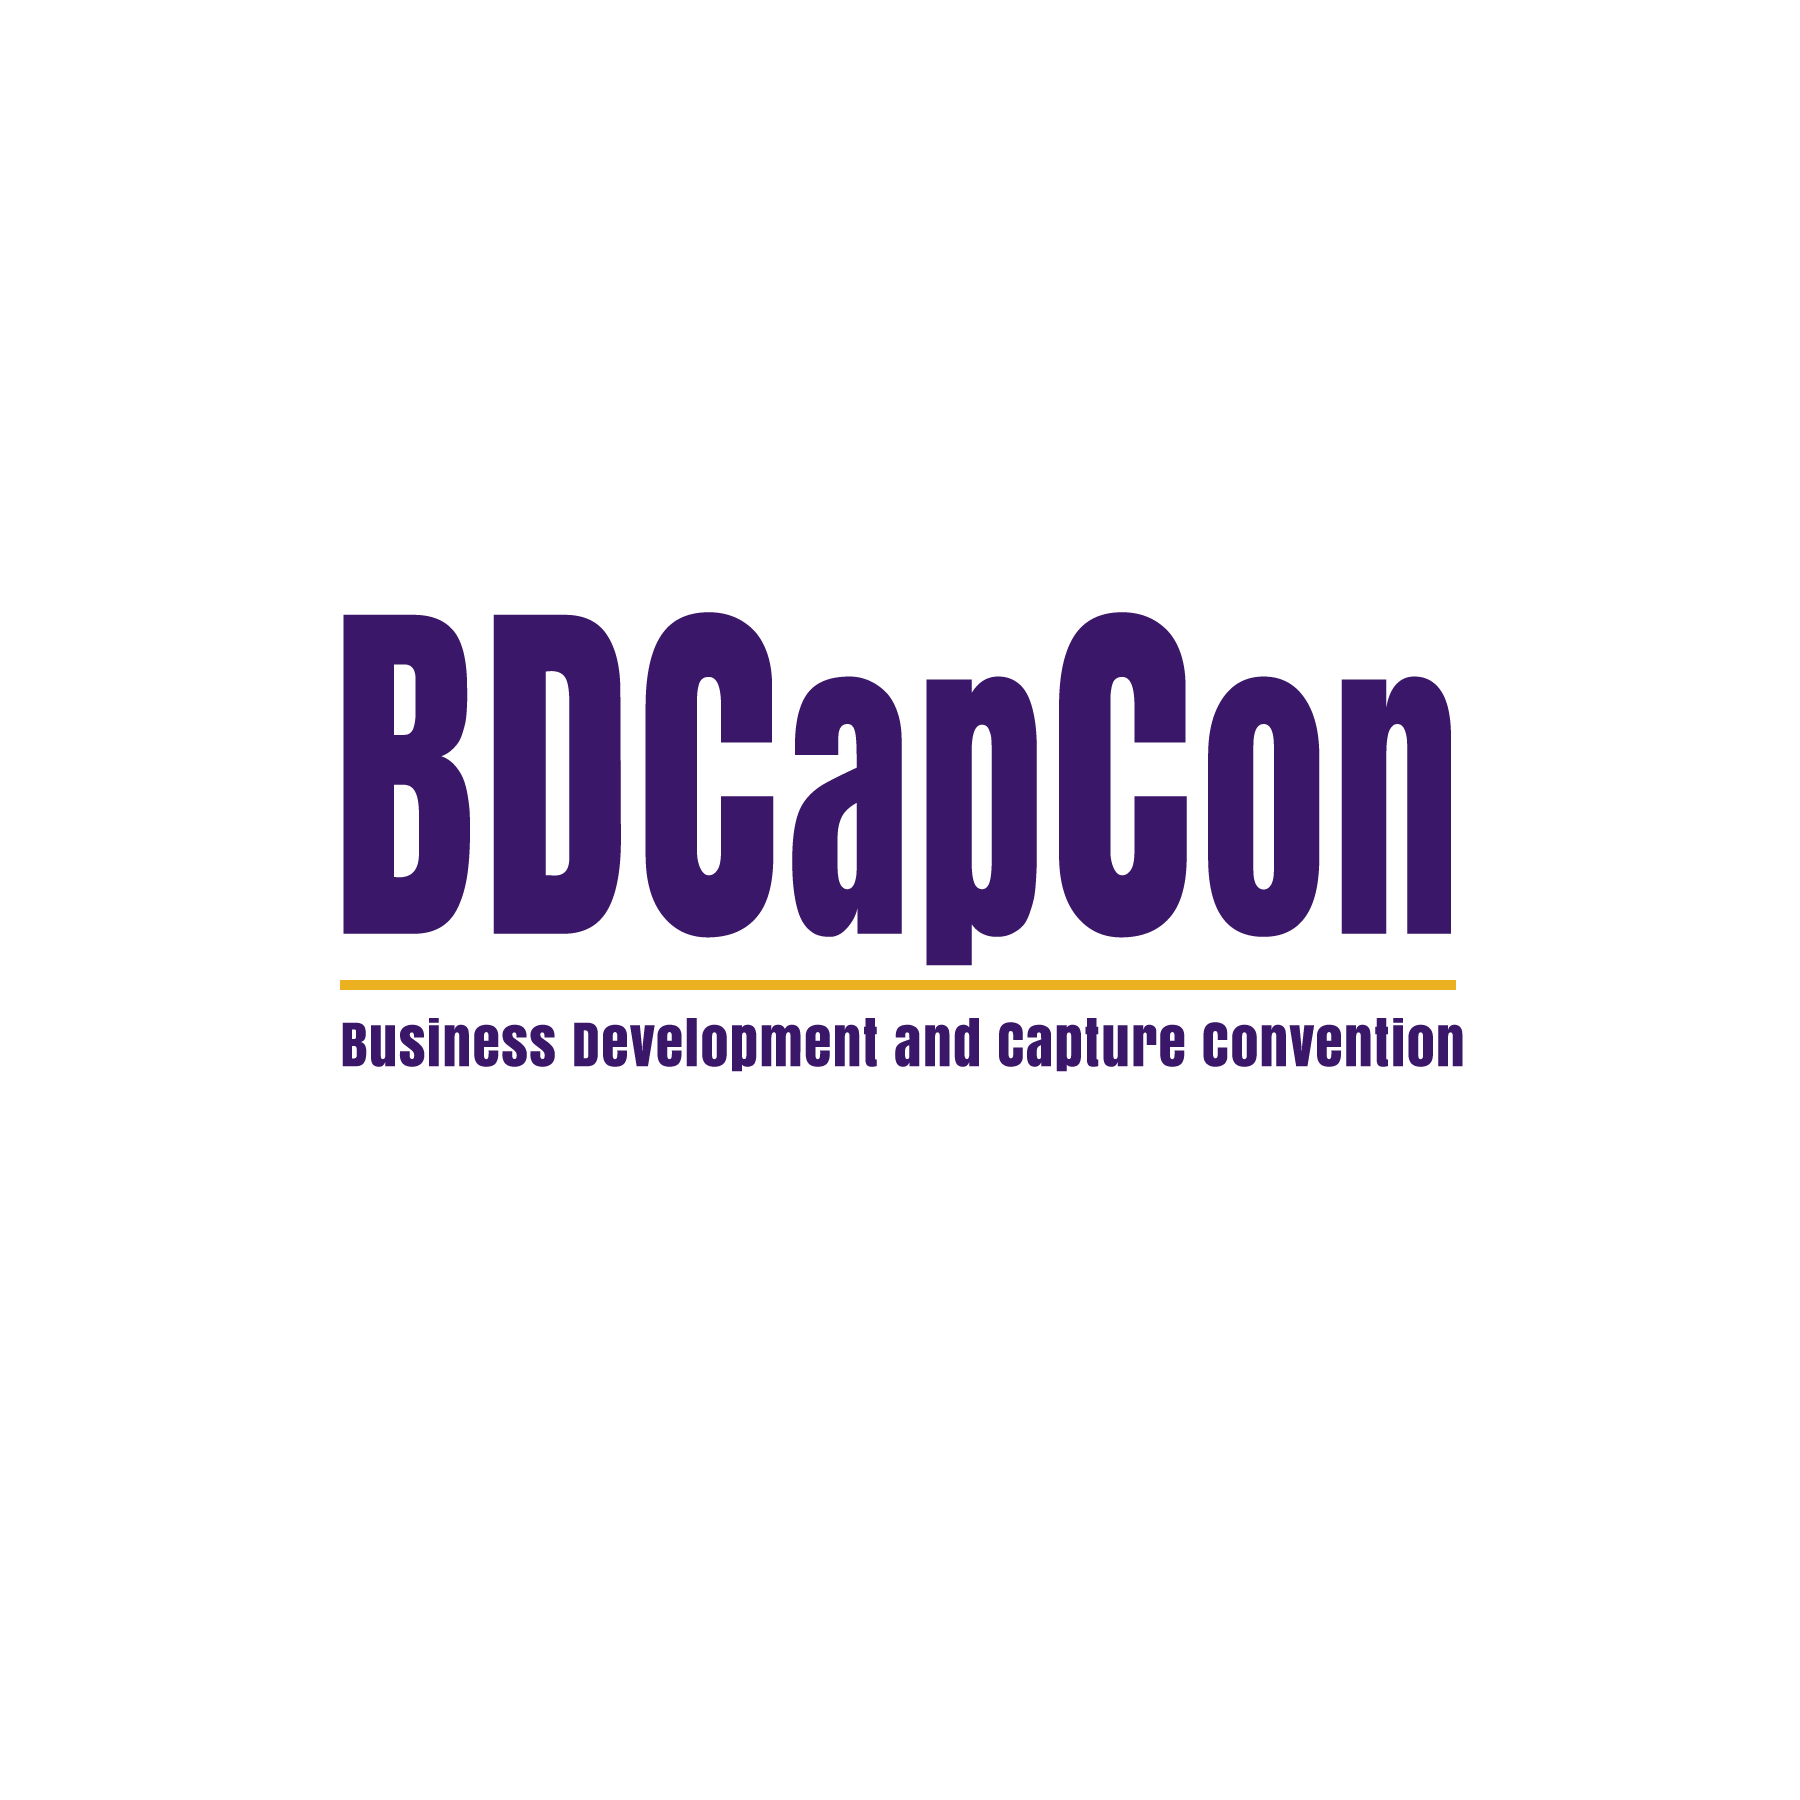 bdcapcon-LOGOpurple-sq-large